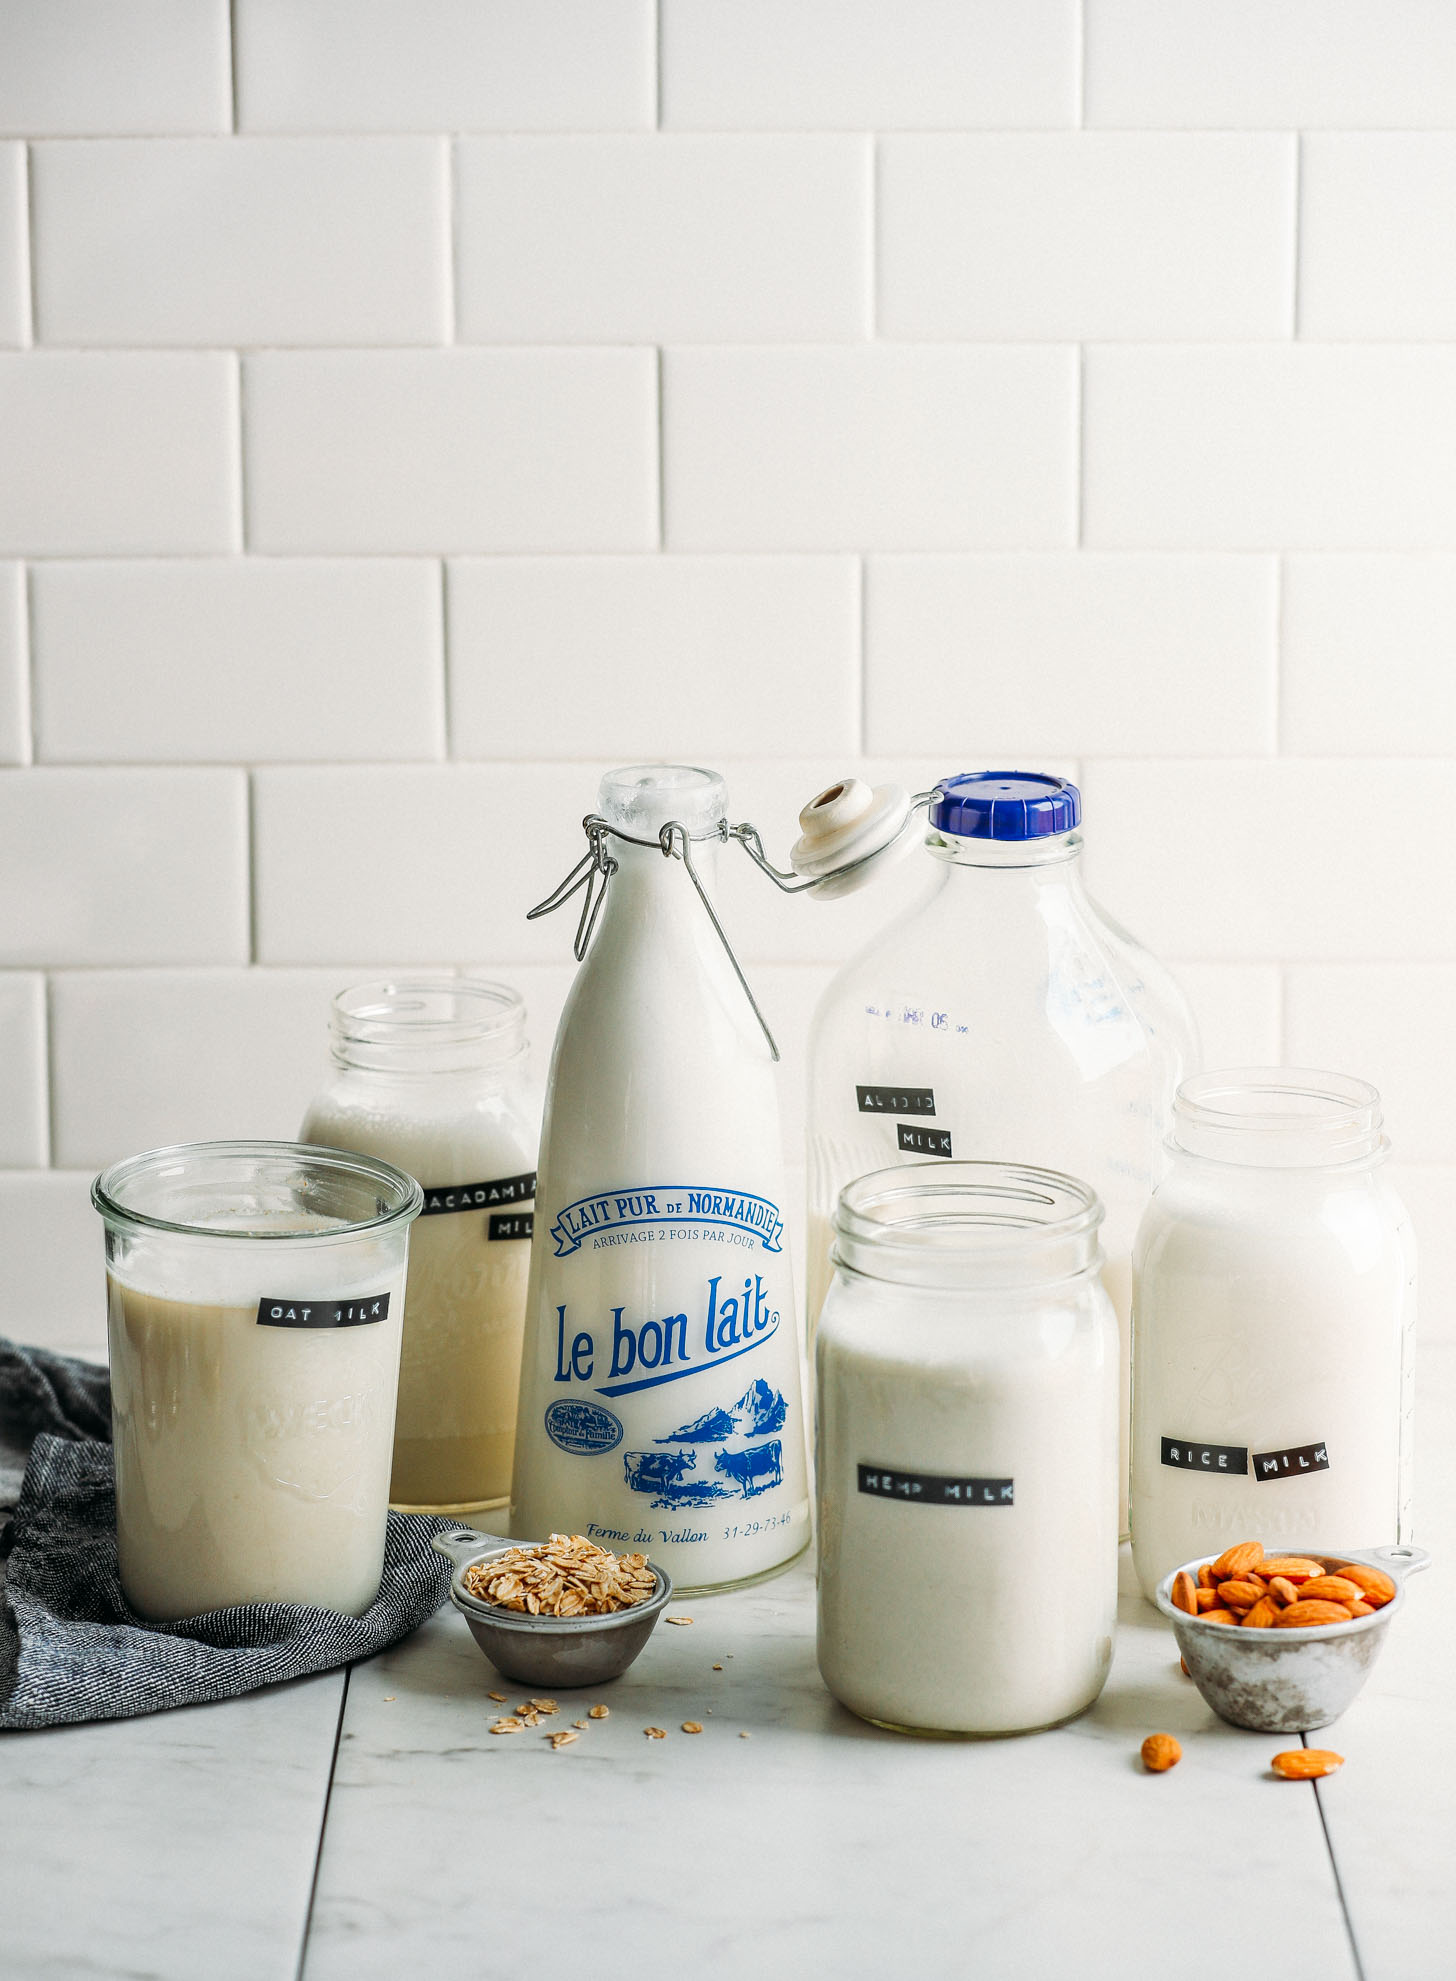 A Complete Guide to Dairy-Free Milk! Recipes for almond, coconut, rice, oat, hemp, and macadamia milk! #milk #vegan #plantbased #oat #rice #coconut #dairyfree #glutenfree #minimalistbaker